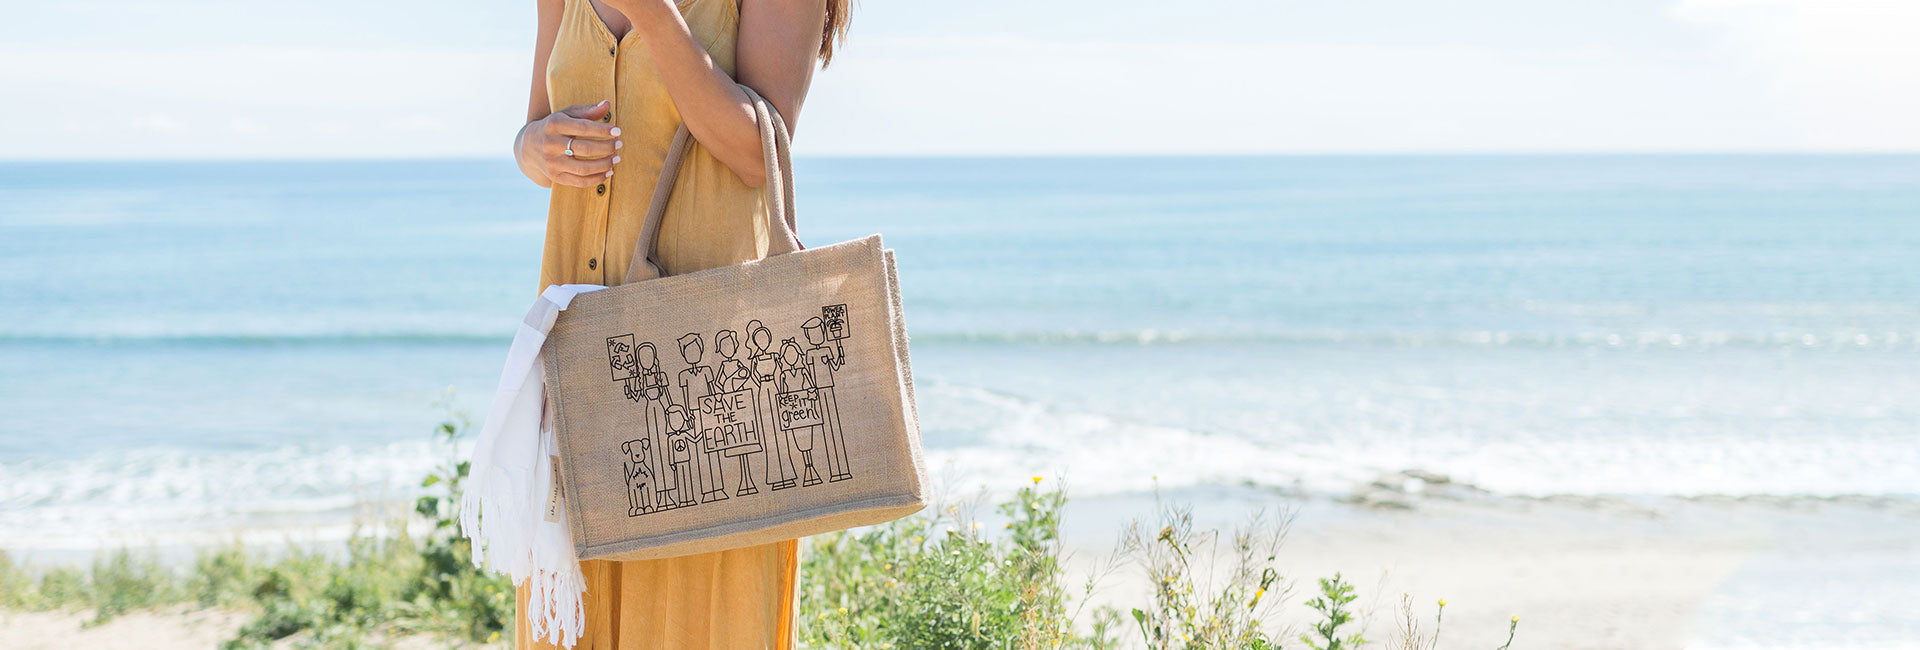 Save the Earth Burlap Tote Bag Save the Earth Illustrated Burlap Tote Bag by Katie Grossbard